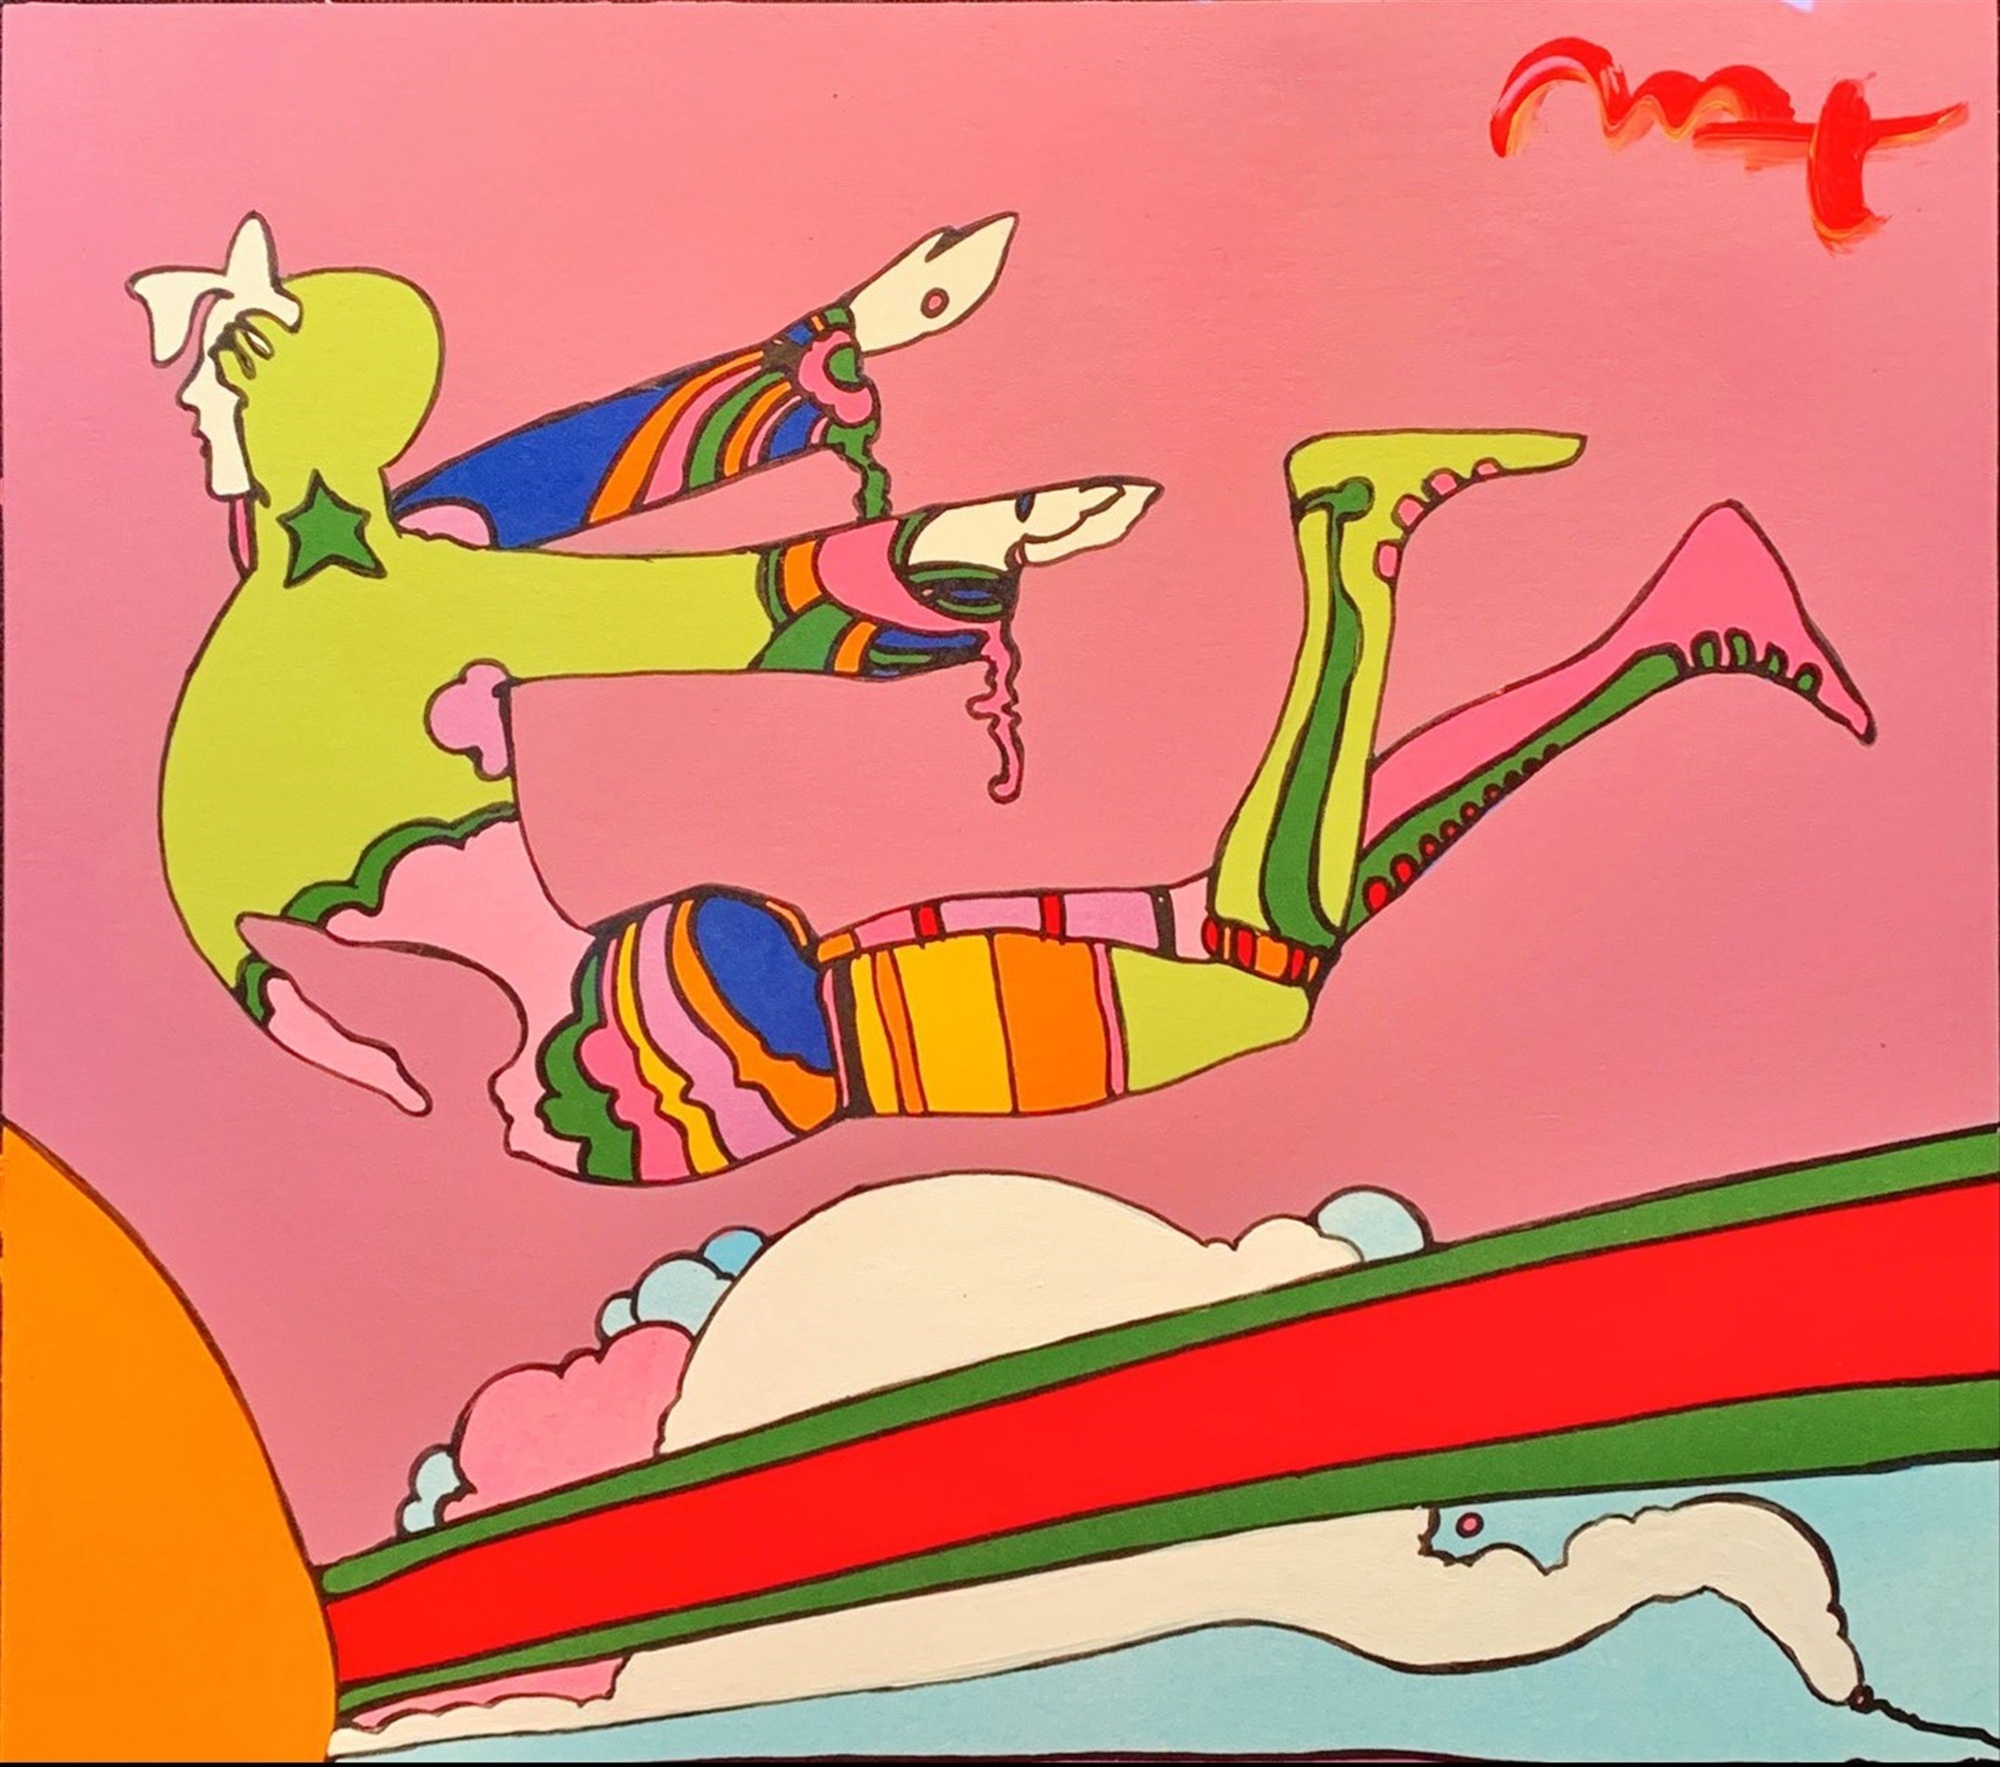 Retro Suite: Cosmic Flyer by Peter Max